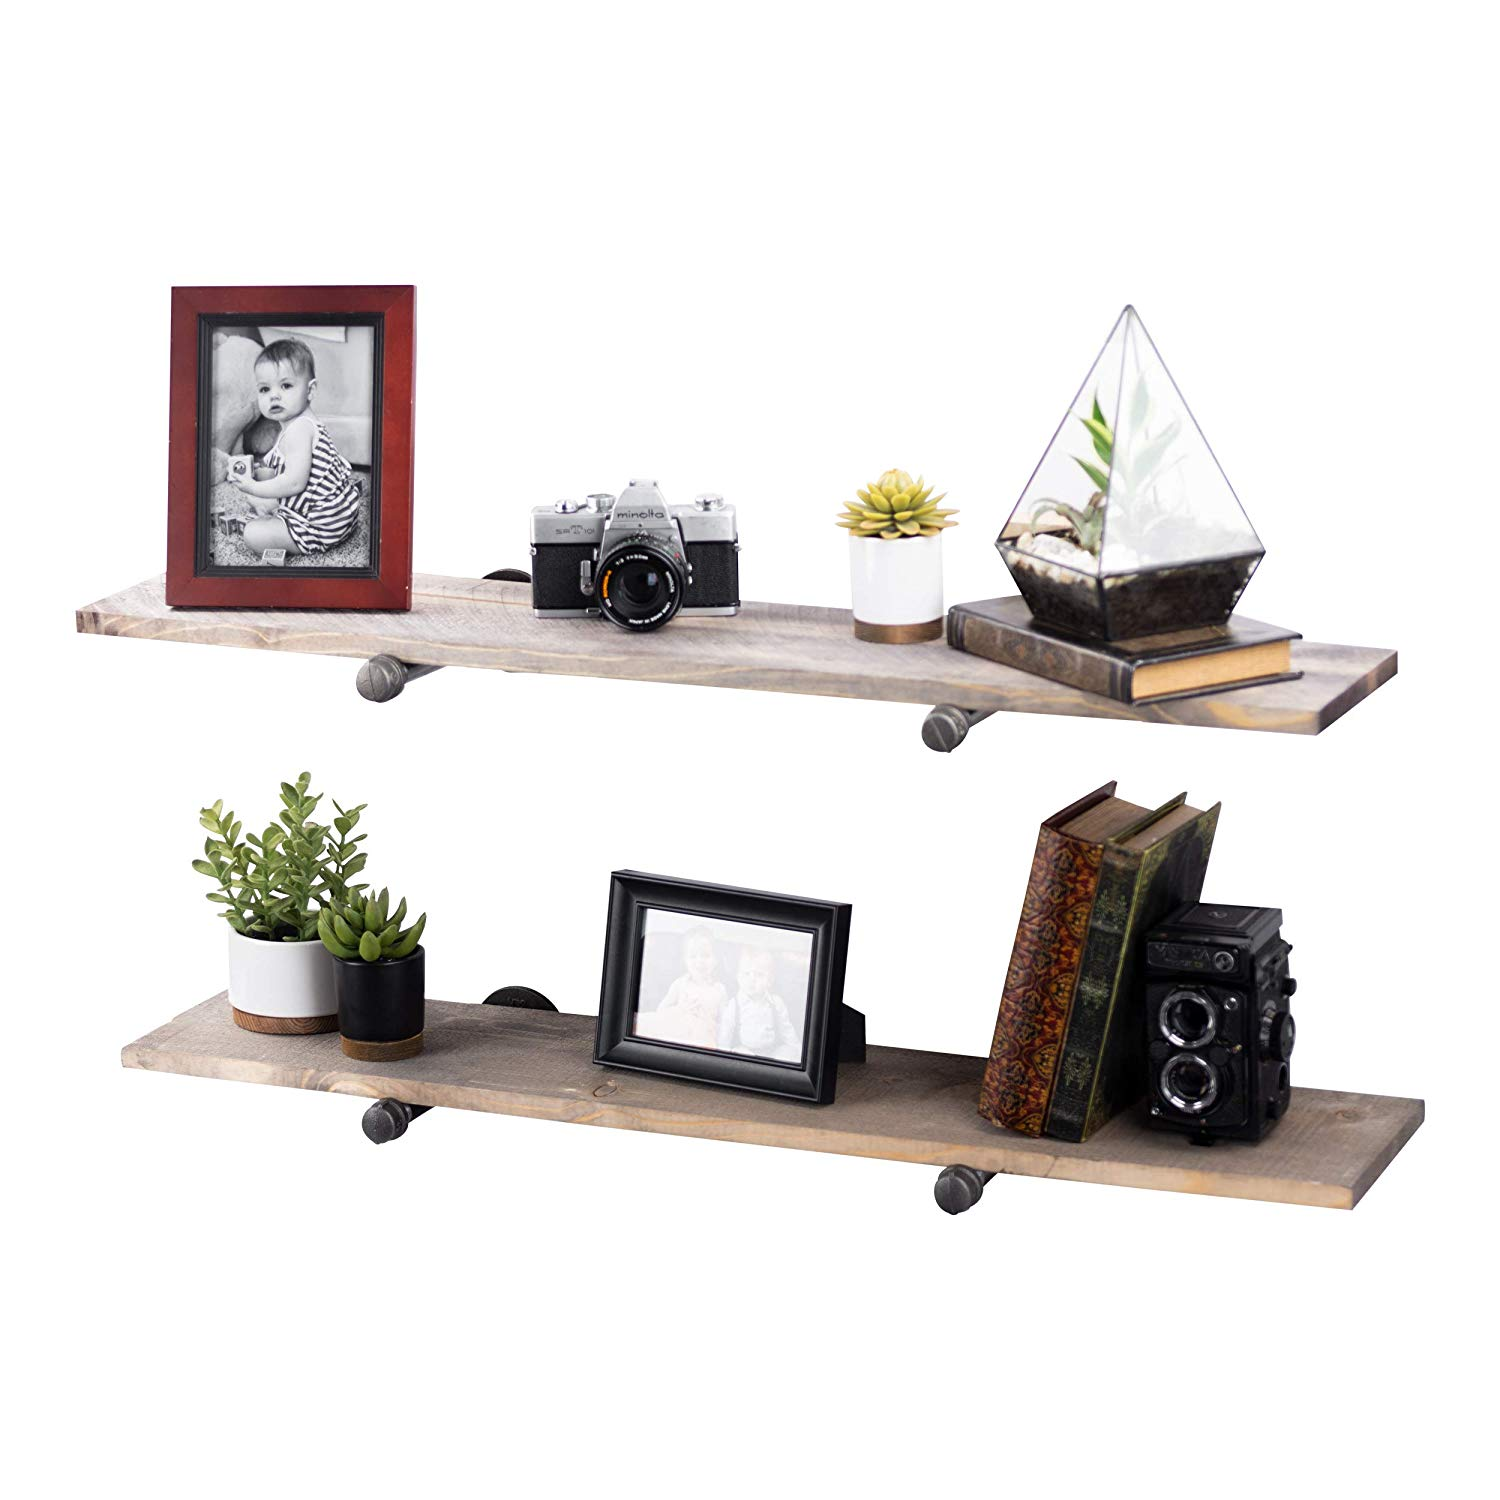 rustic industrial pipe decor floating shelving pack shelves gray distressed aged wood and iron pipes bracket wall mounted hanging shelf reclaimed barnwood television consoles